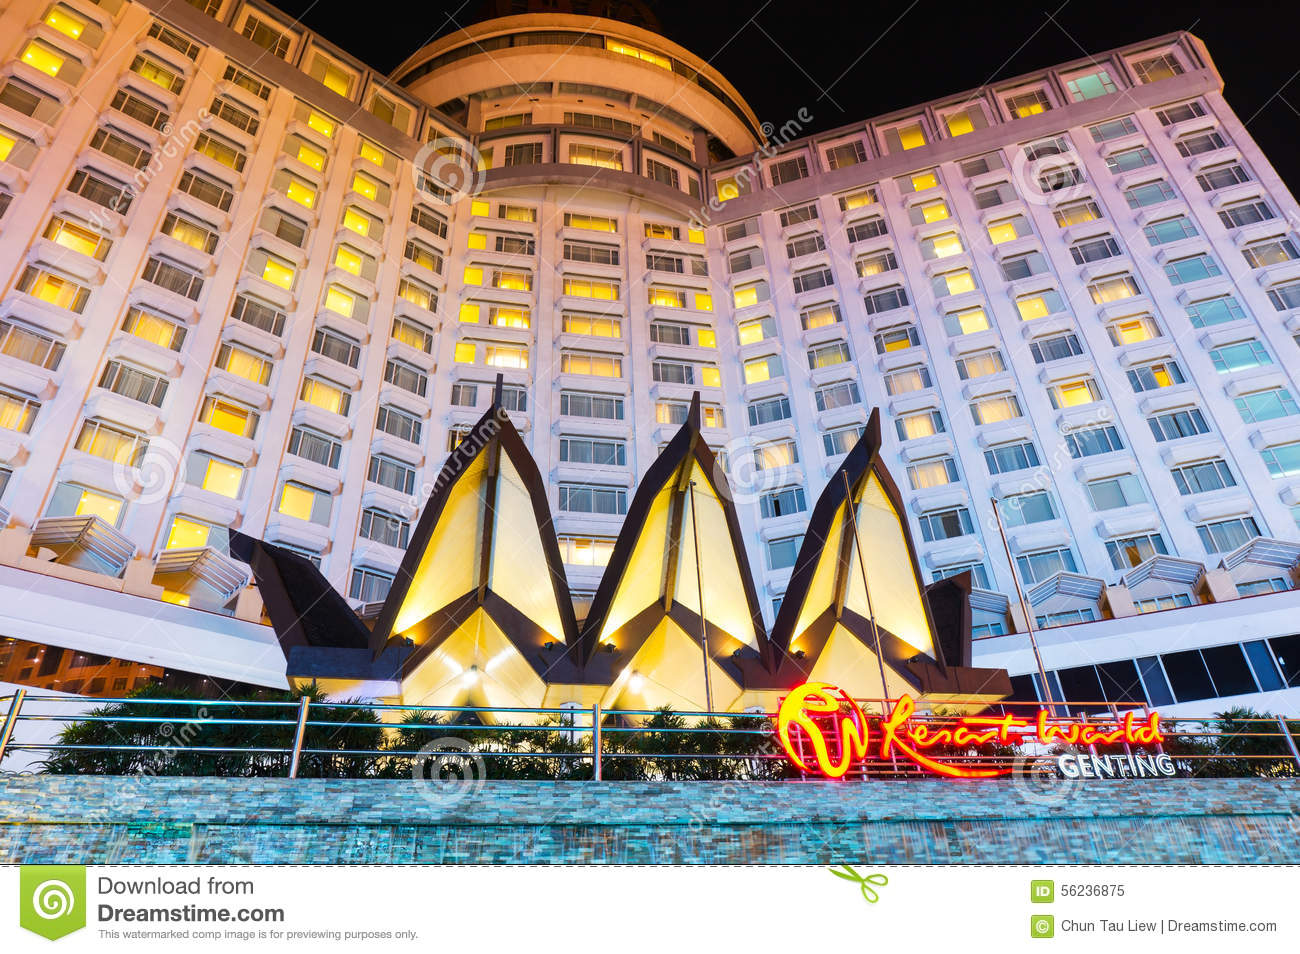 155 Genting Casino Photos Free Royalty Free Stock Photos From Dreamstime